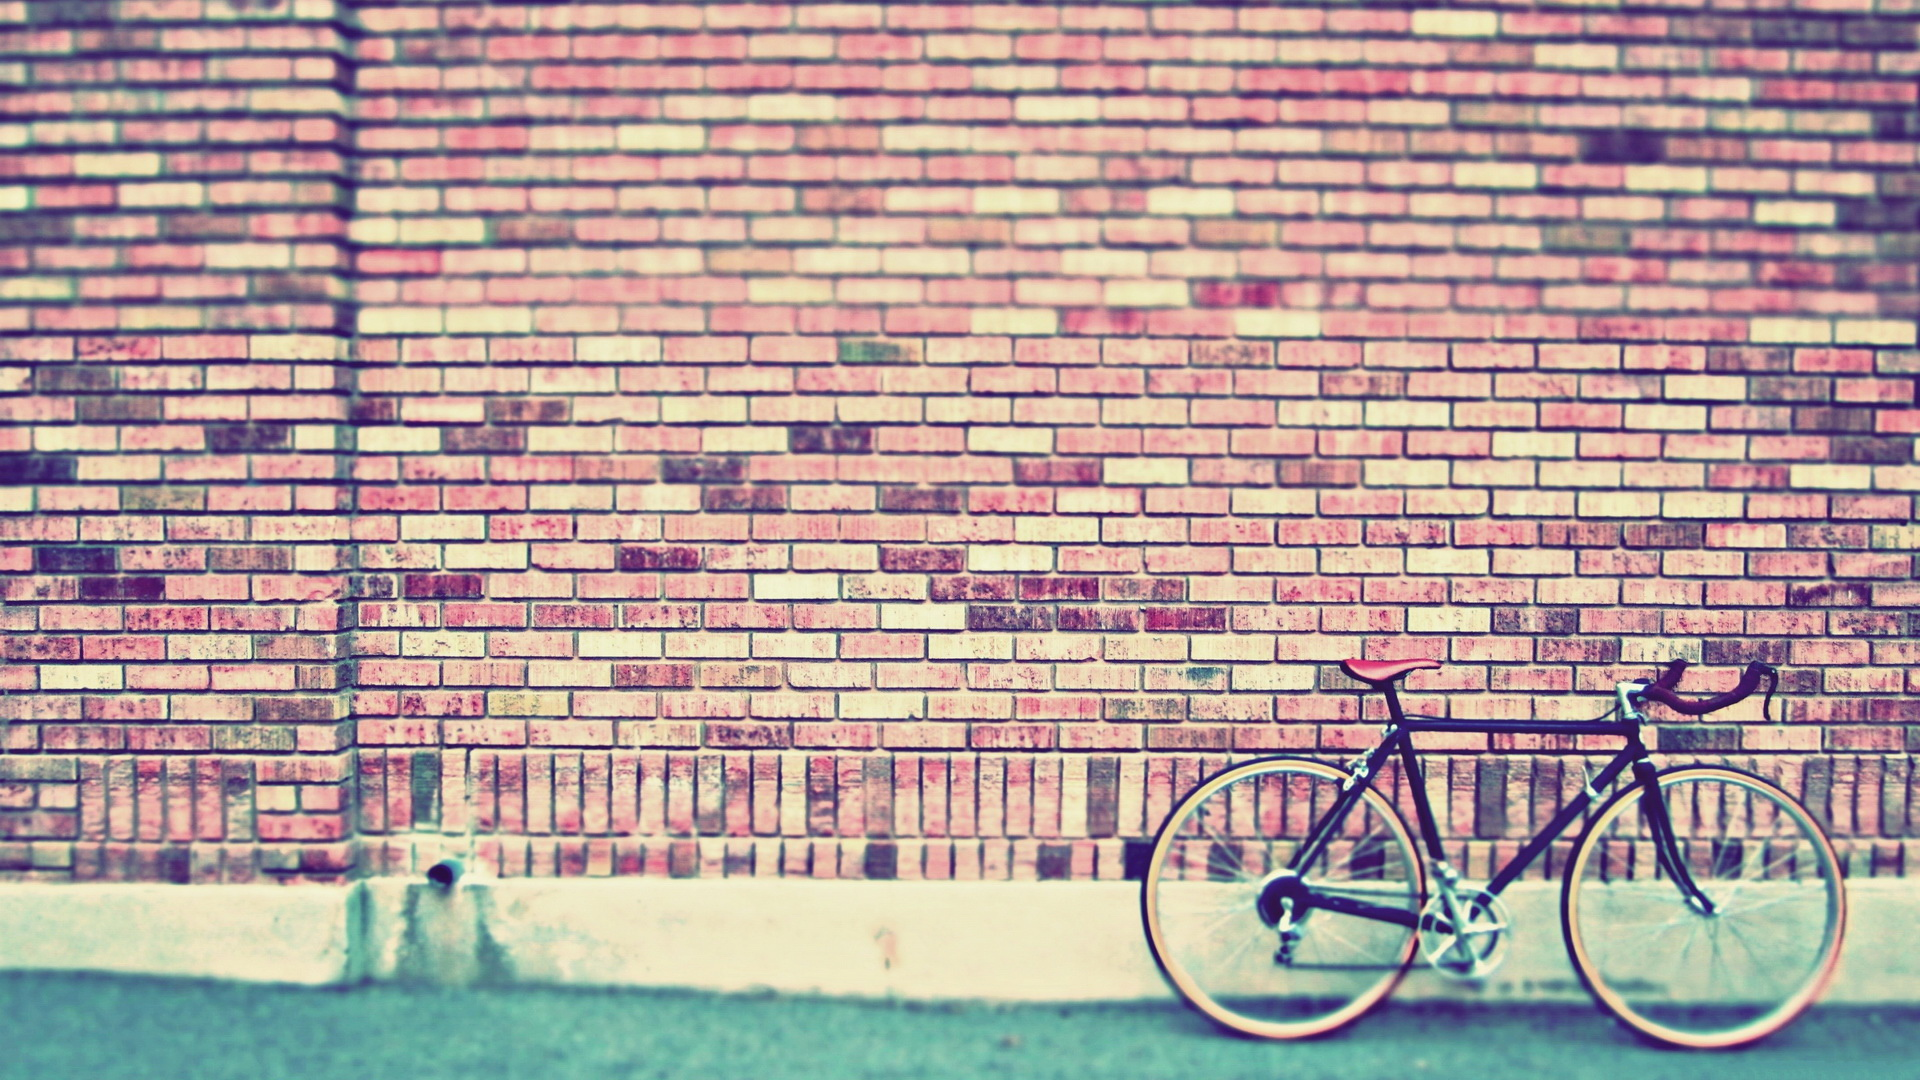 wallpaper iphone retro - photo #20